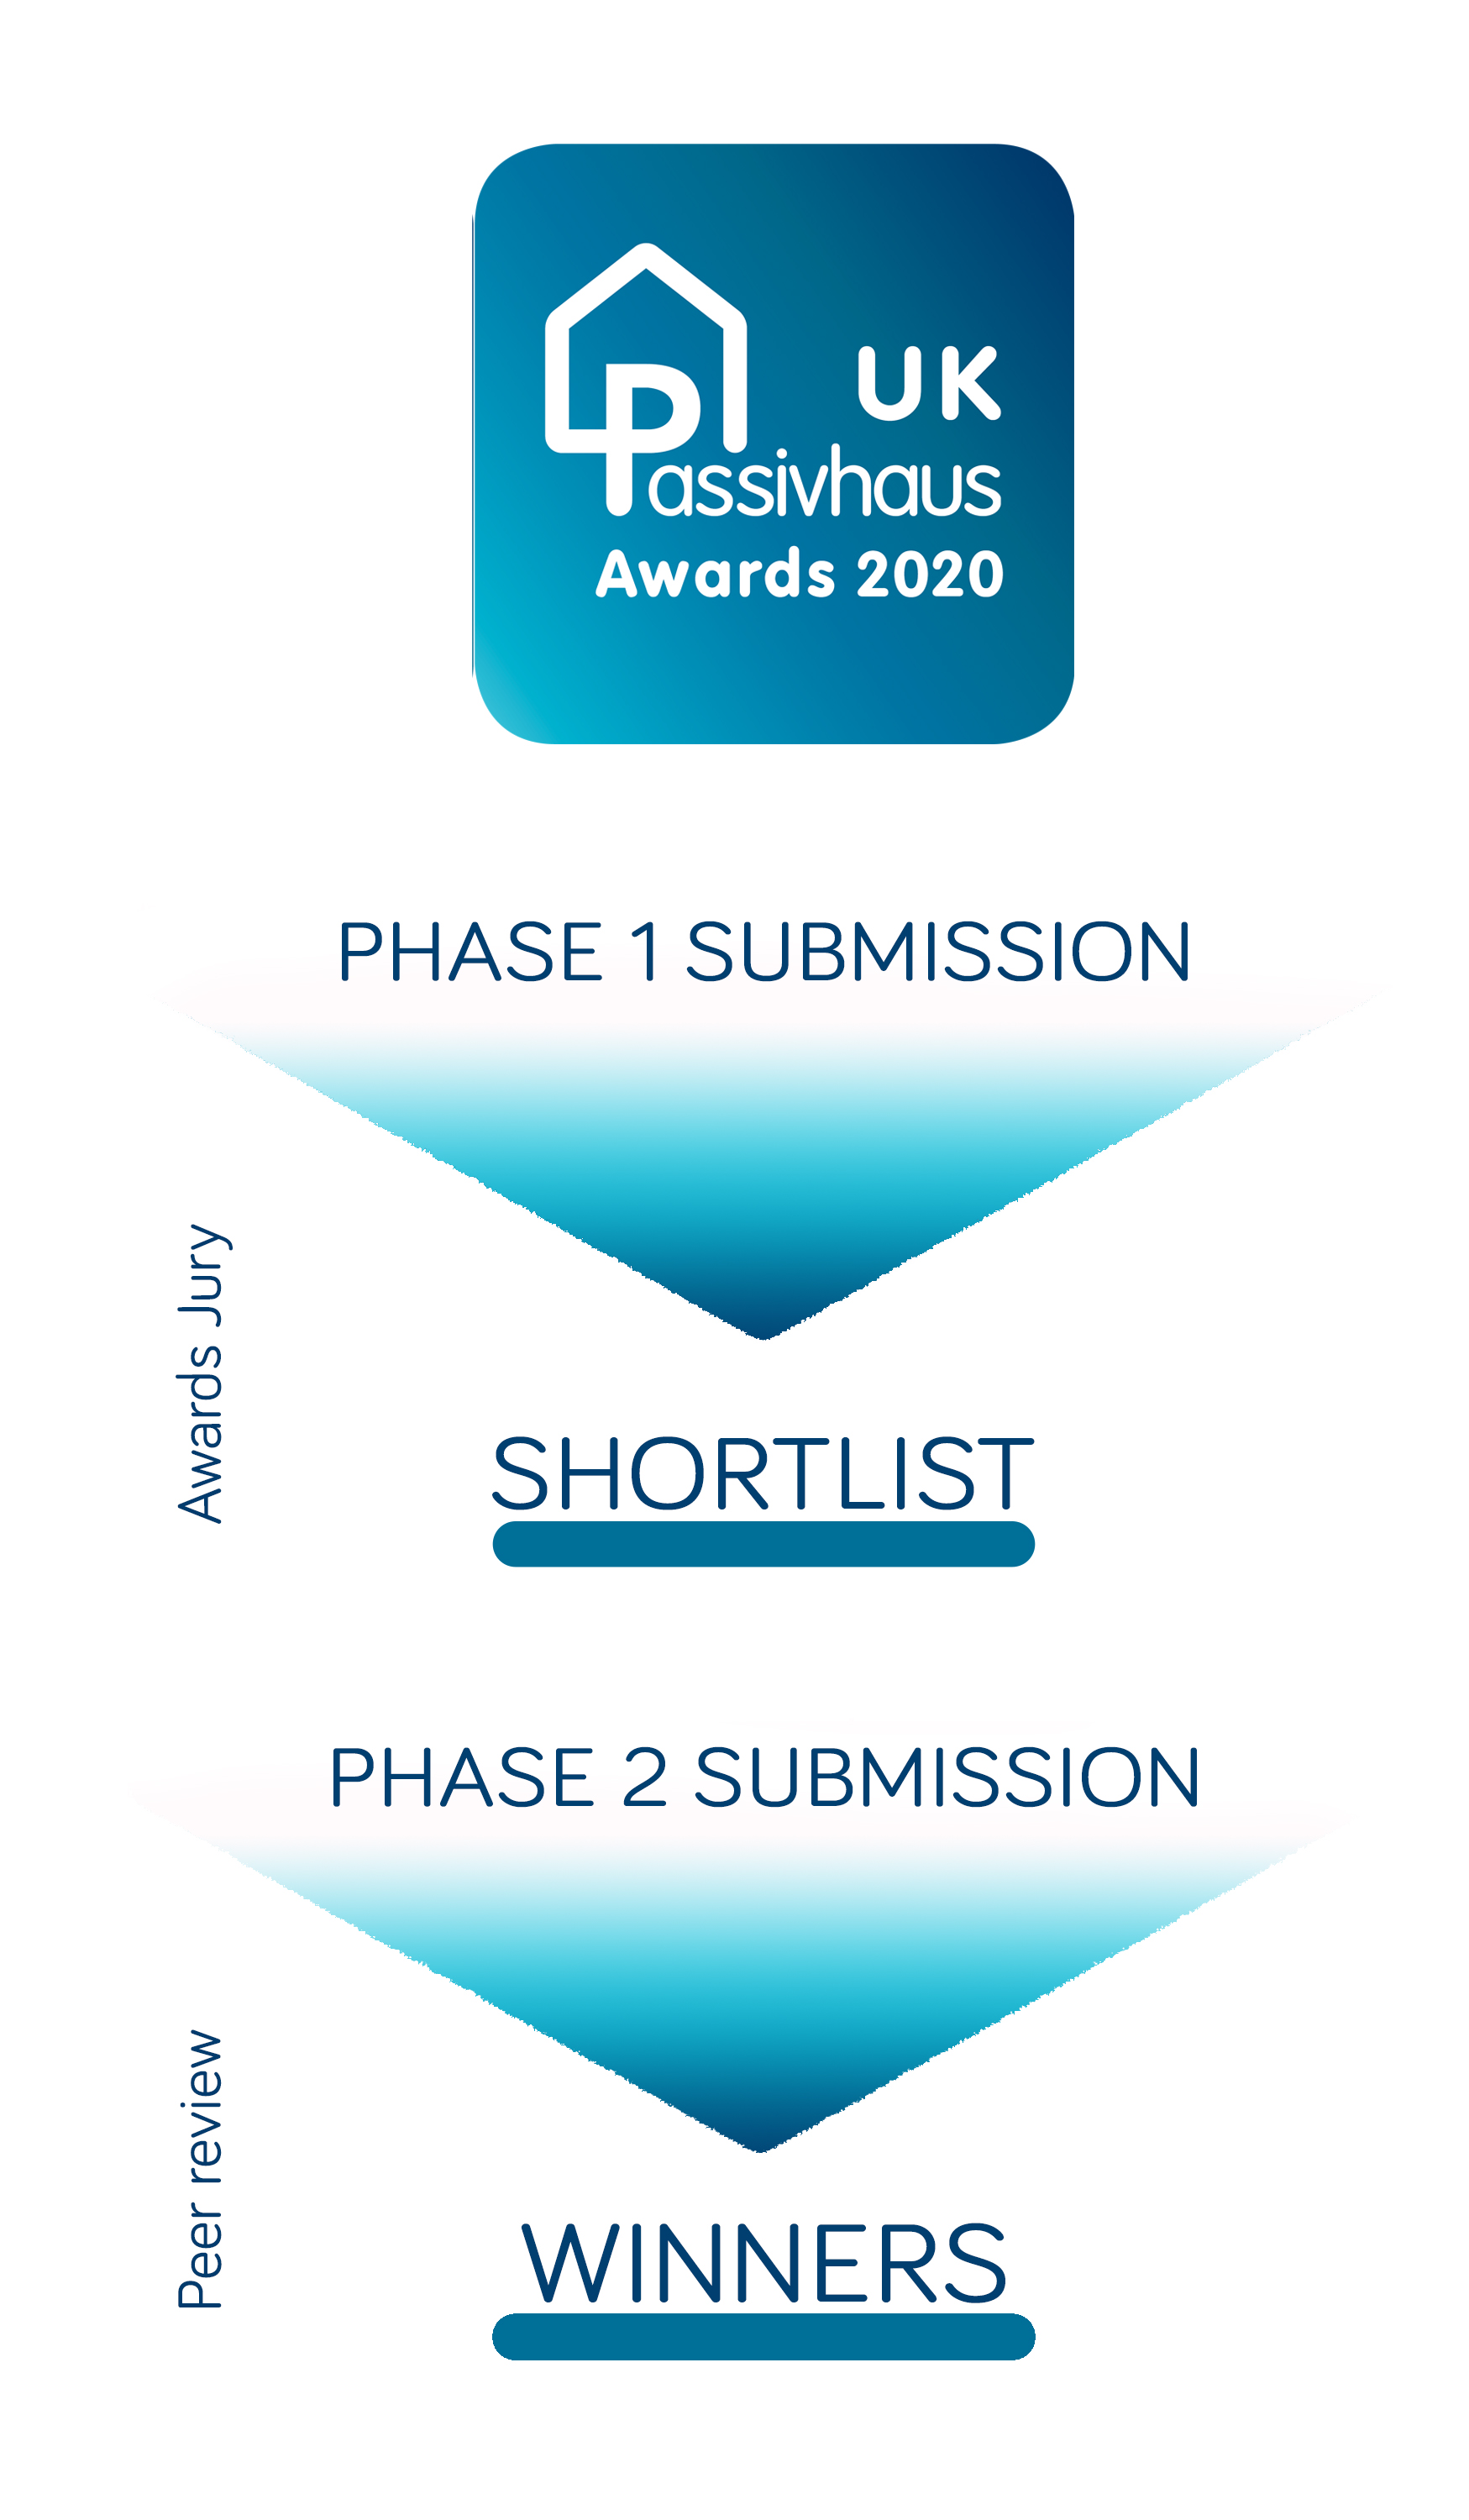 2020 UK Passivhaus Awards journey